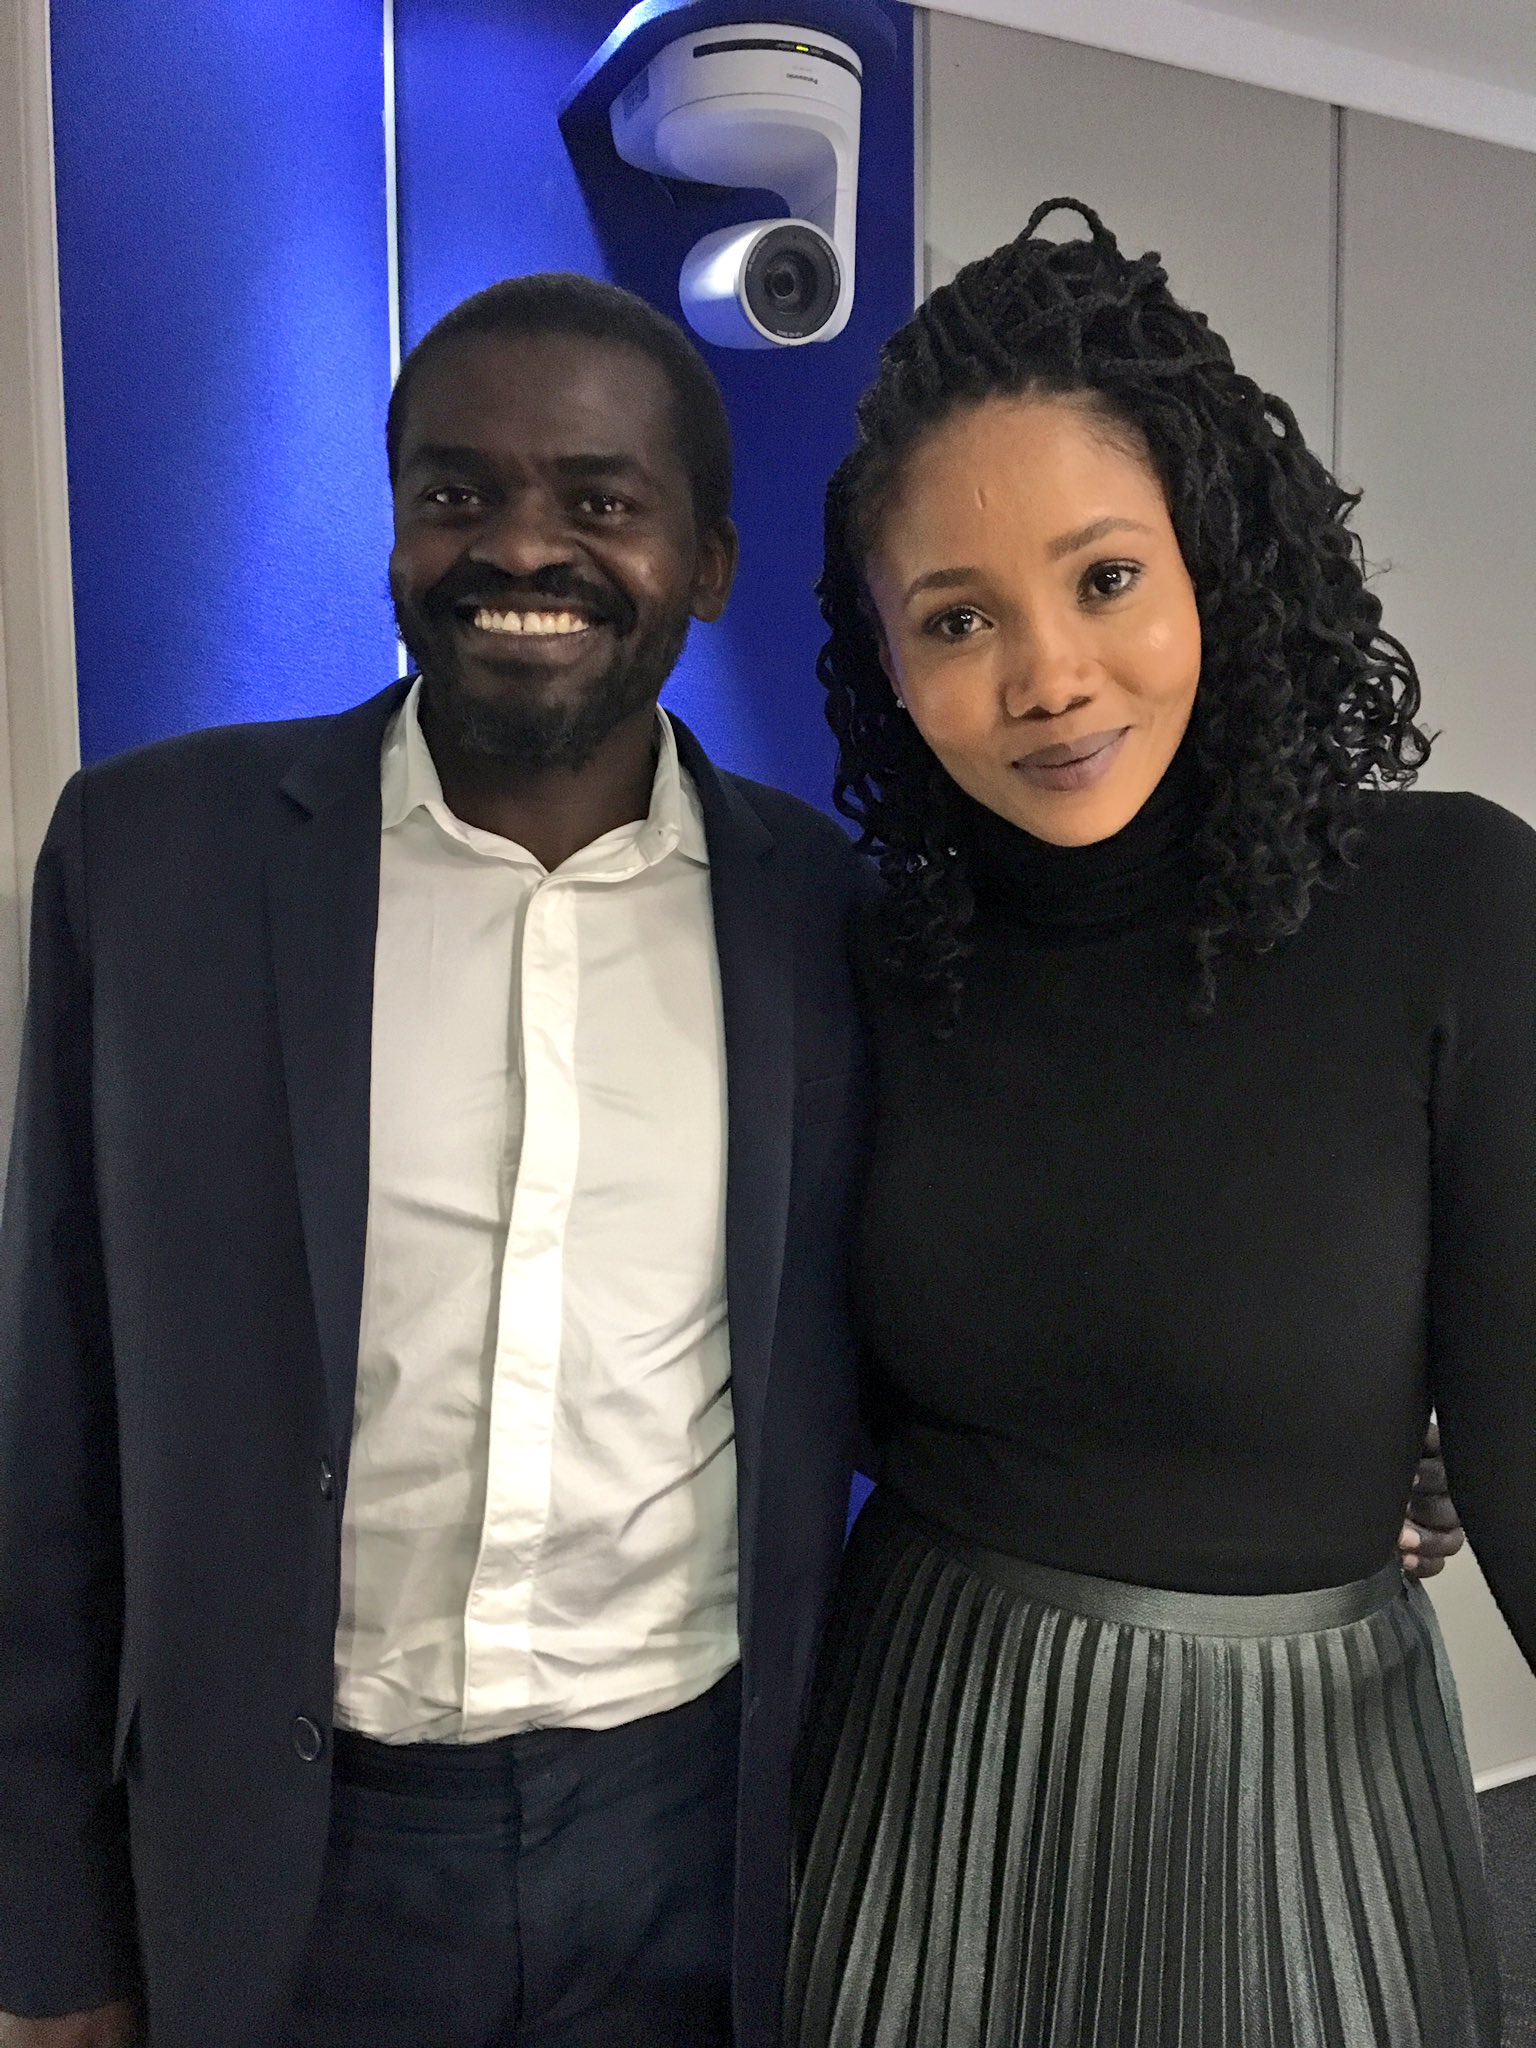 Catch a very special #SavingsMonth #Masterclass with @Azania_ next. She is joined by @FrankMagwegwe & will unveil #MySavingsPledge ! https://t.co/oLDB2OUYjX